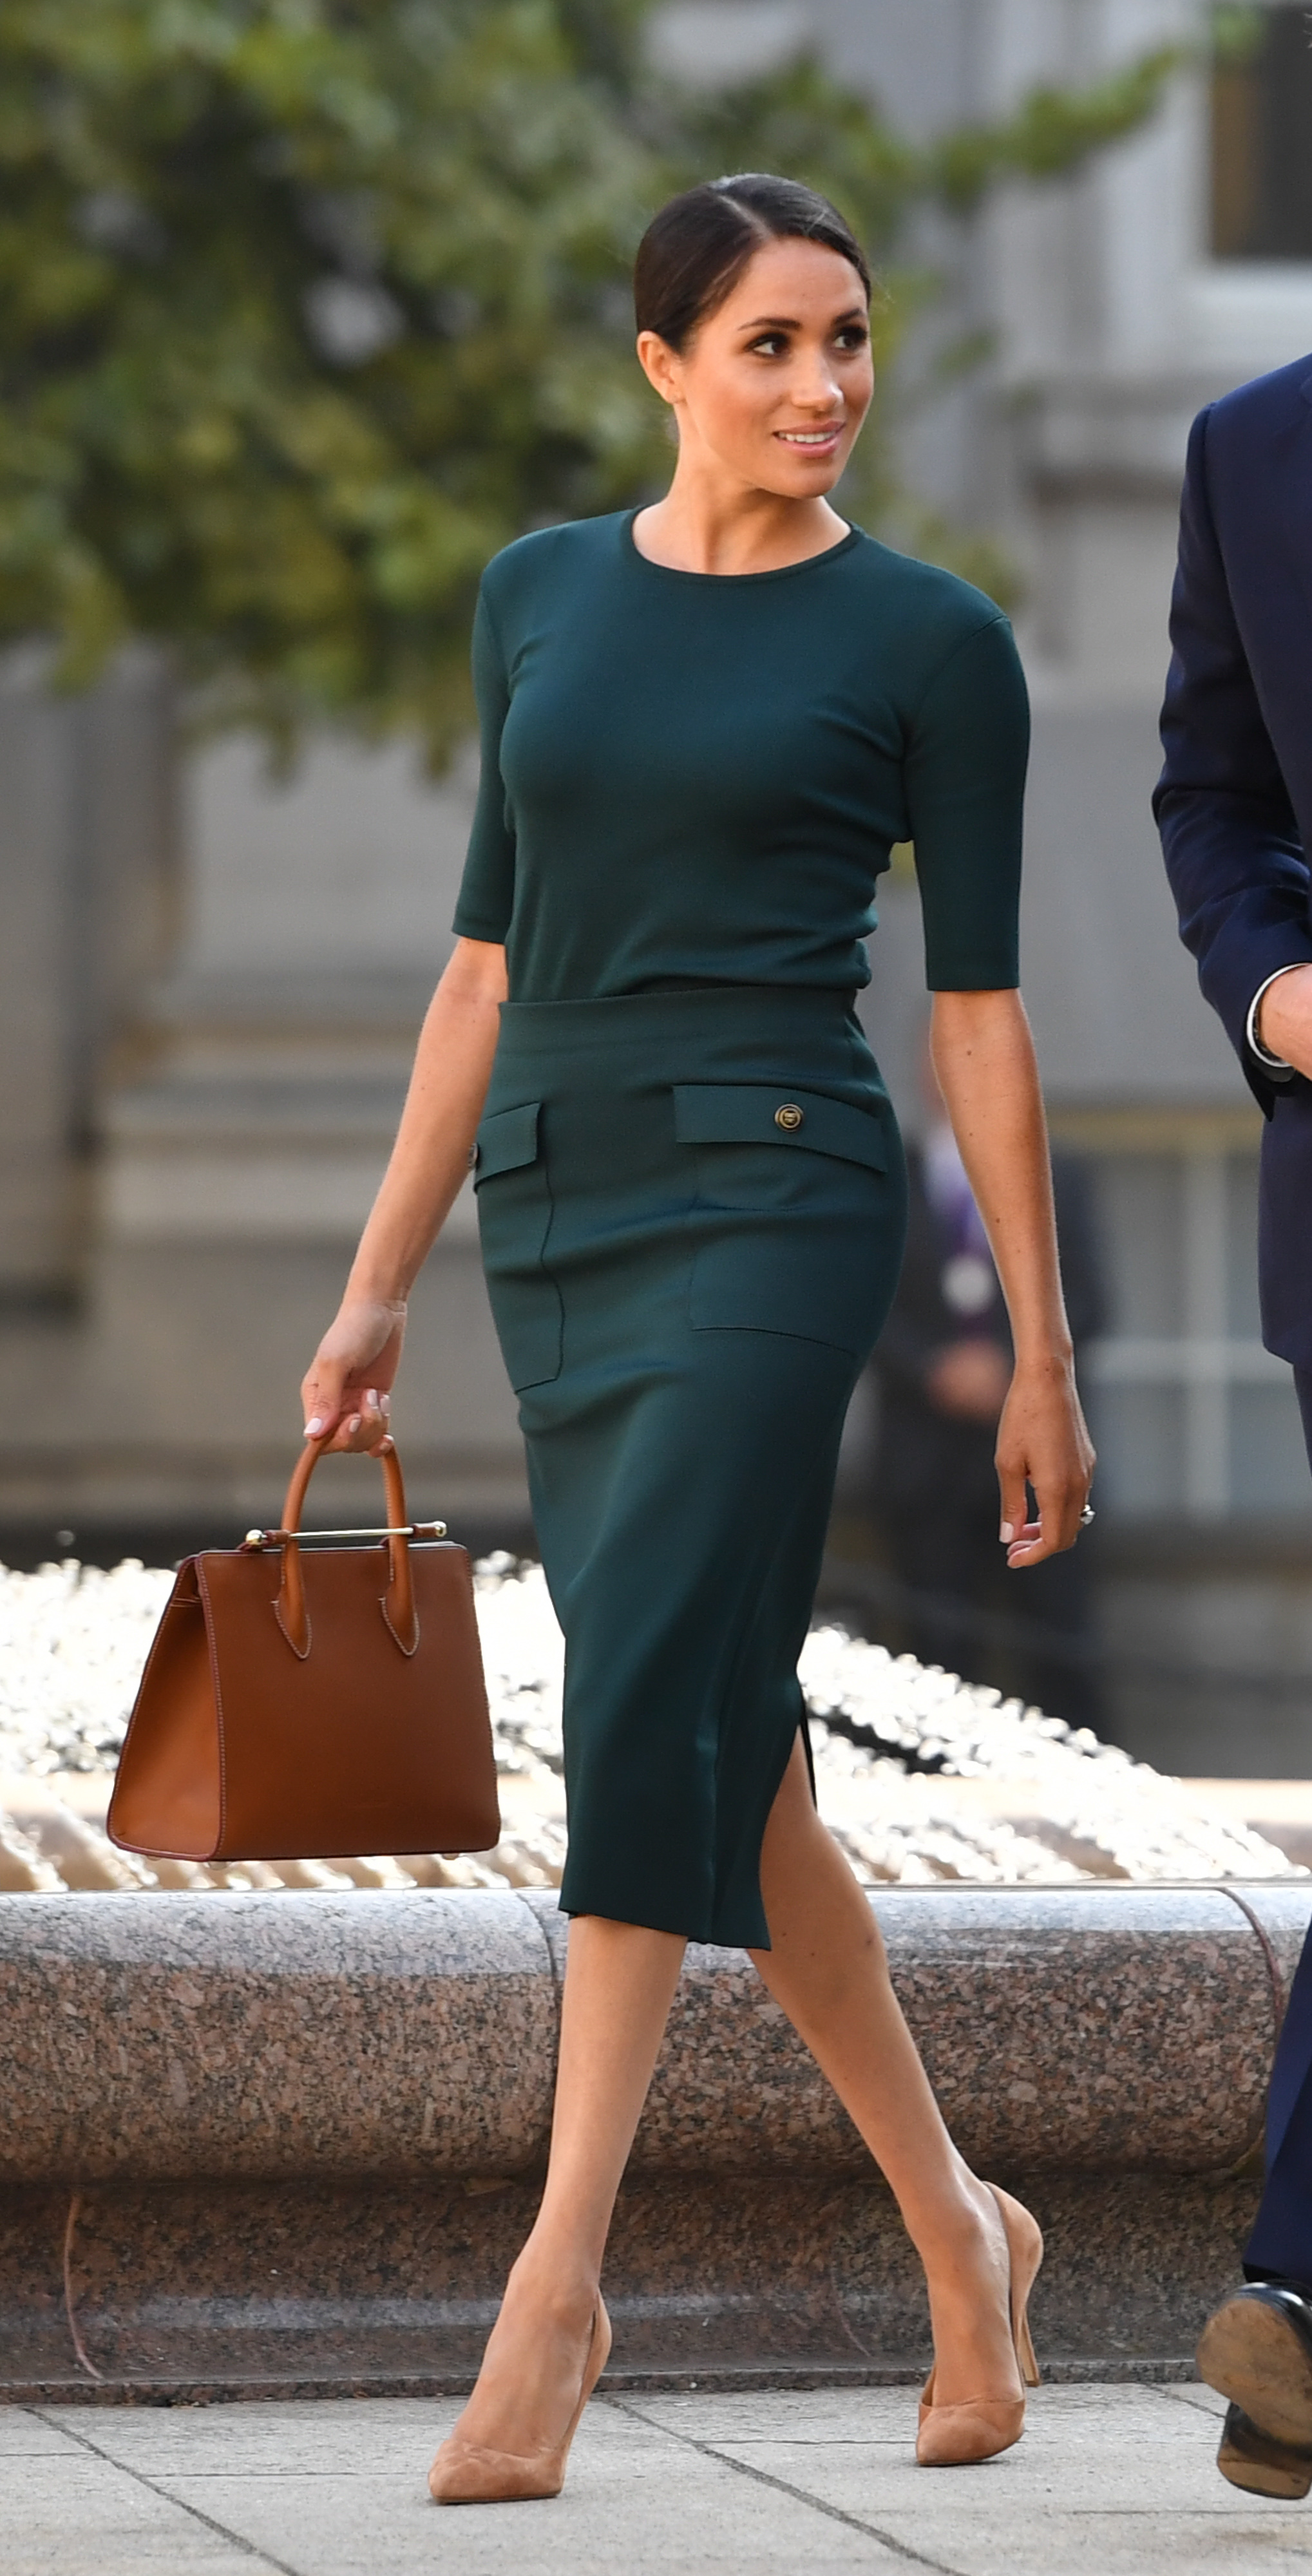 The Duke and Duchess of Sussex are greeted by Taoiseach, Leo Varadkar (right) at Government Buildings during their visit to Dublin, Ireland. PRESS ASSOCIATION Photo. Picture date: Tuesday July 10, 2018. See PA story ROYAL Sussex. Photo credit should read: Joe Giddens/PA Wire